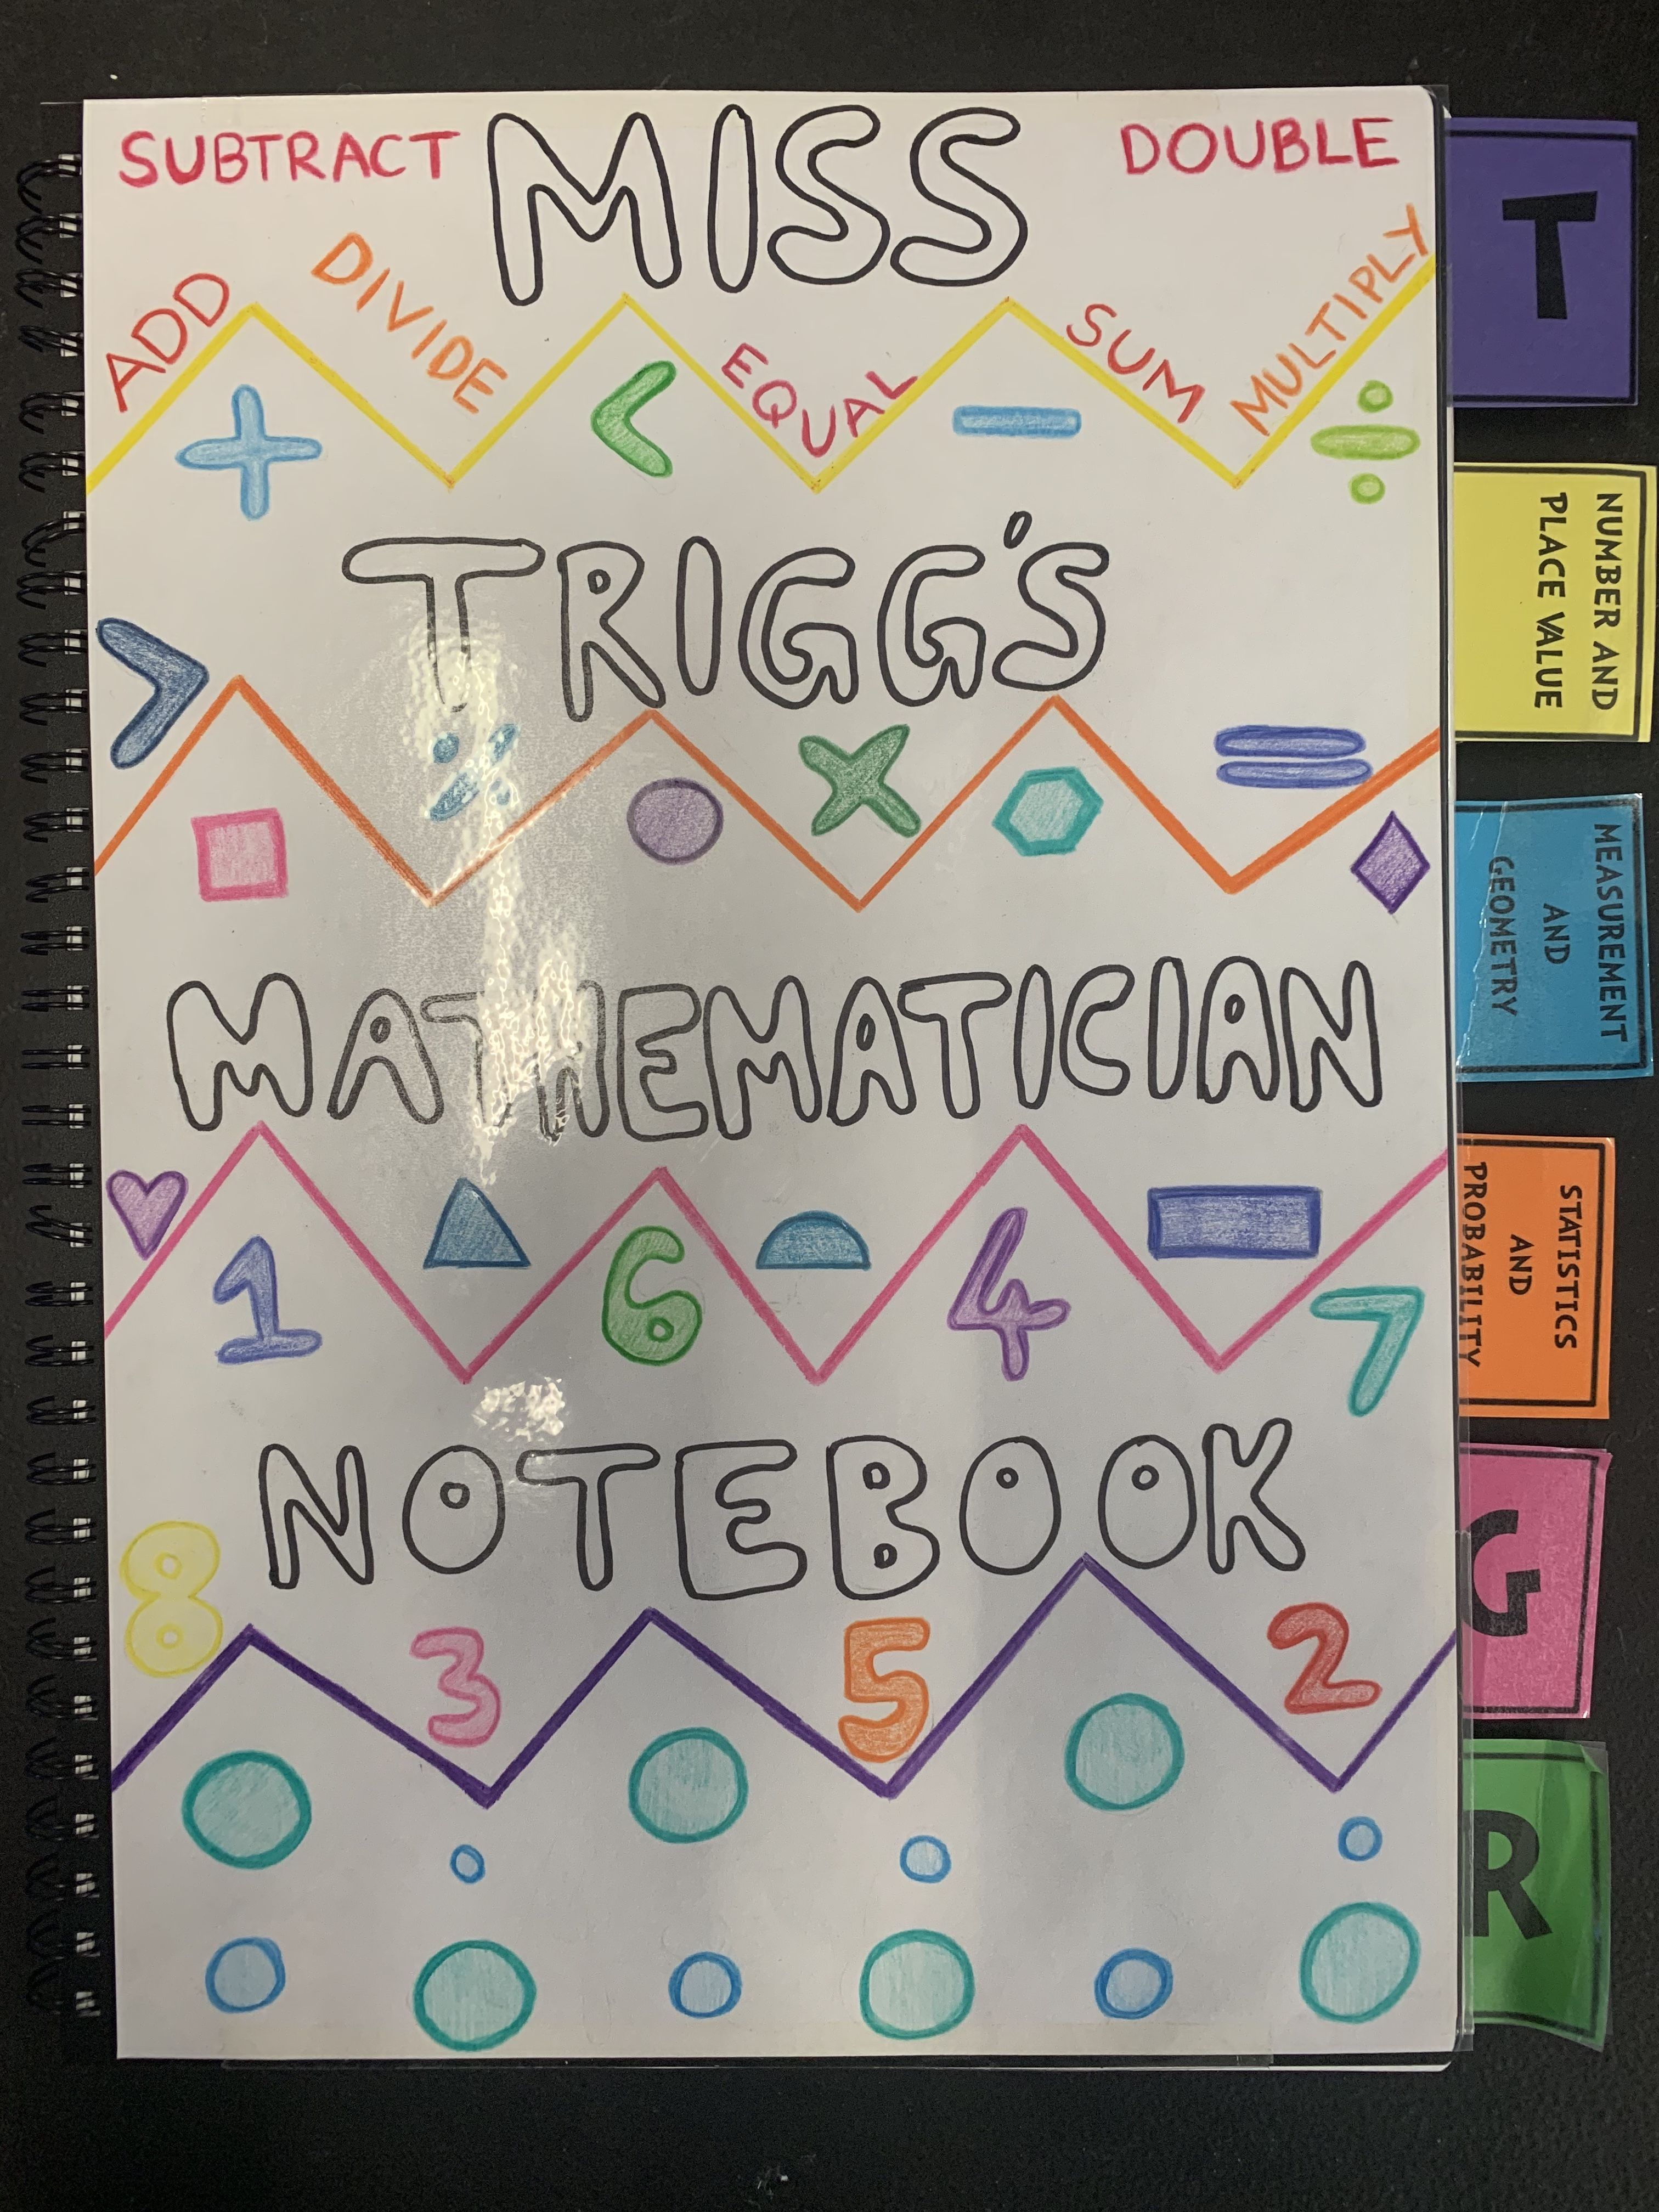 Pin by courtney trigg on mathematicians notebook our